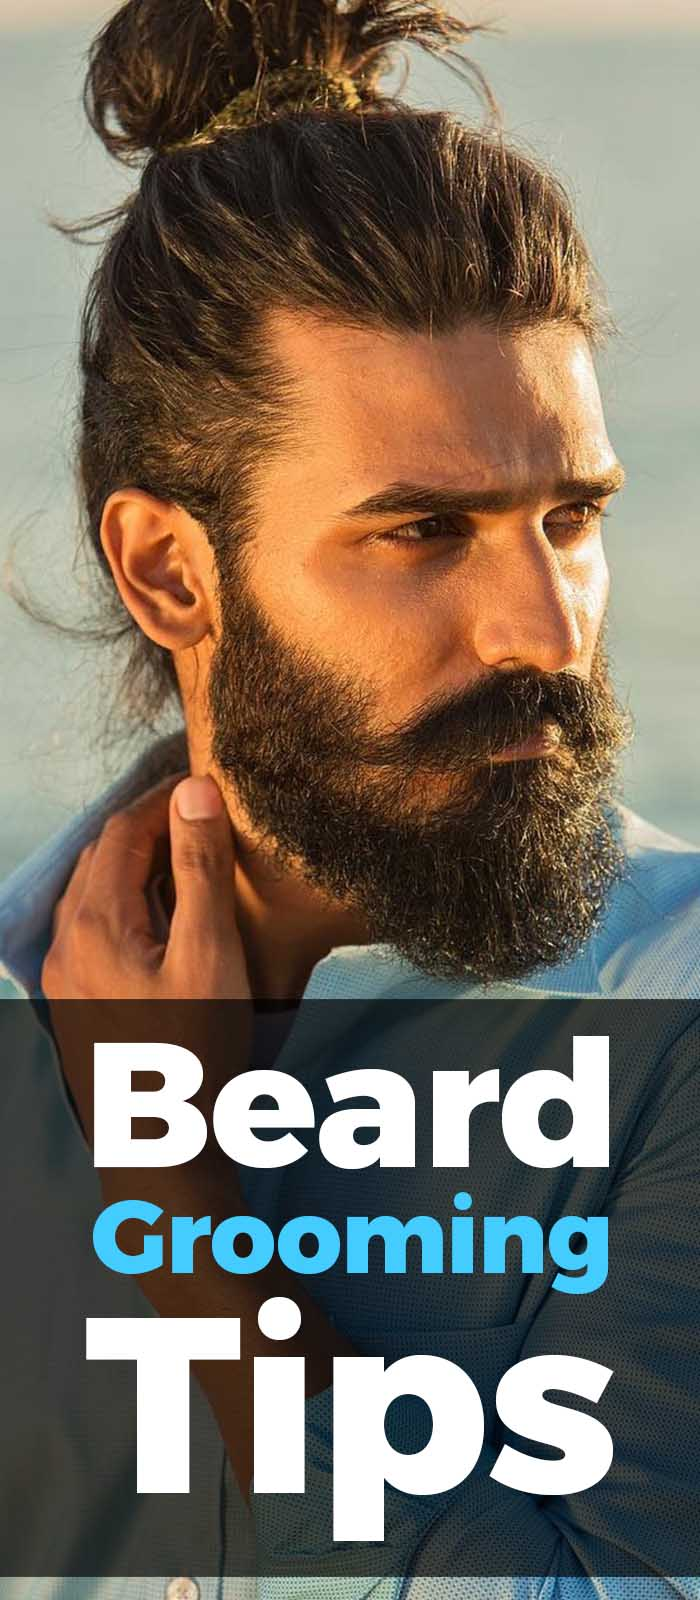 Beard Grooming Tips For Men.